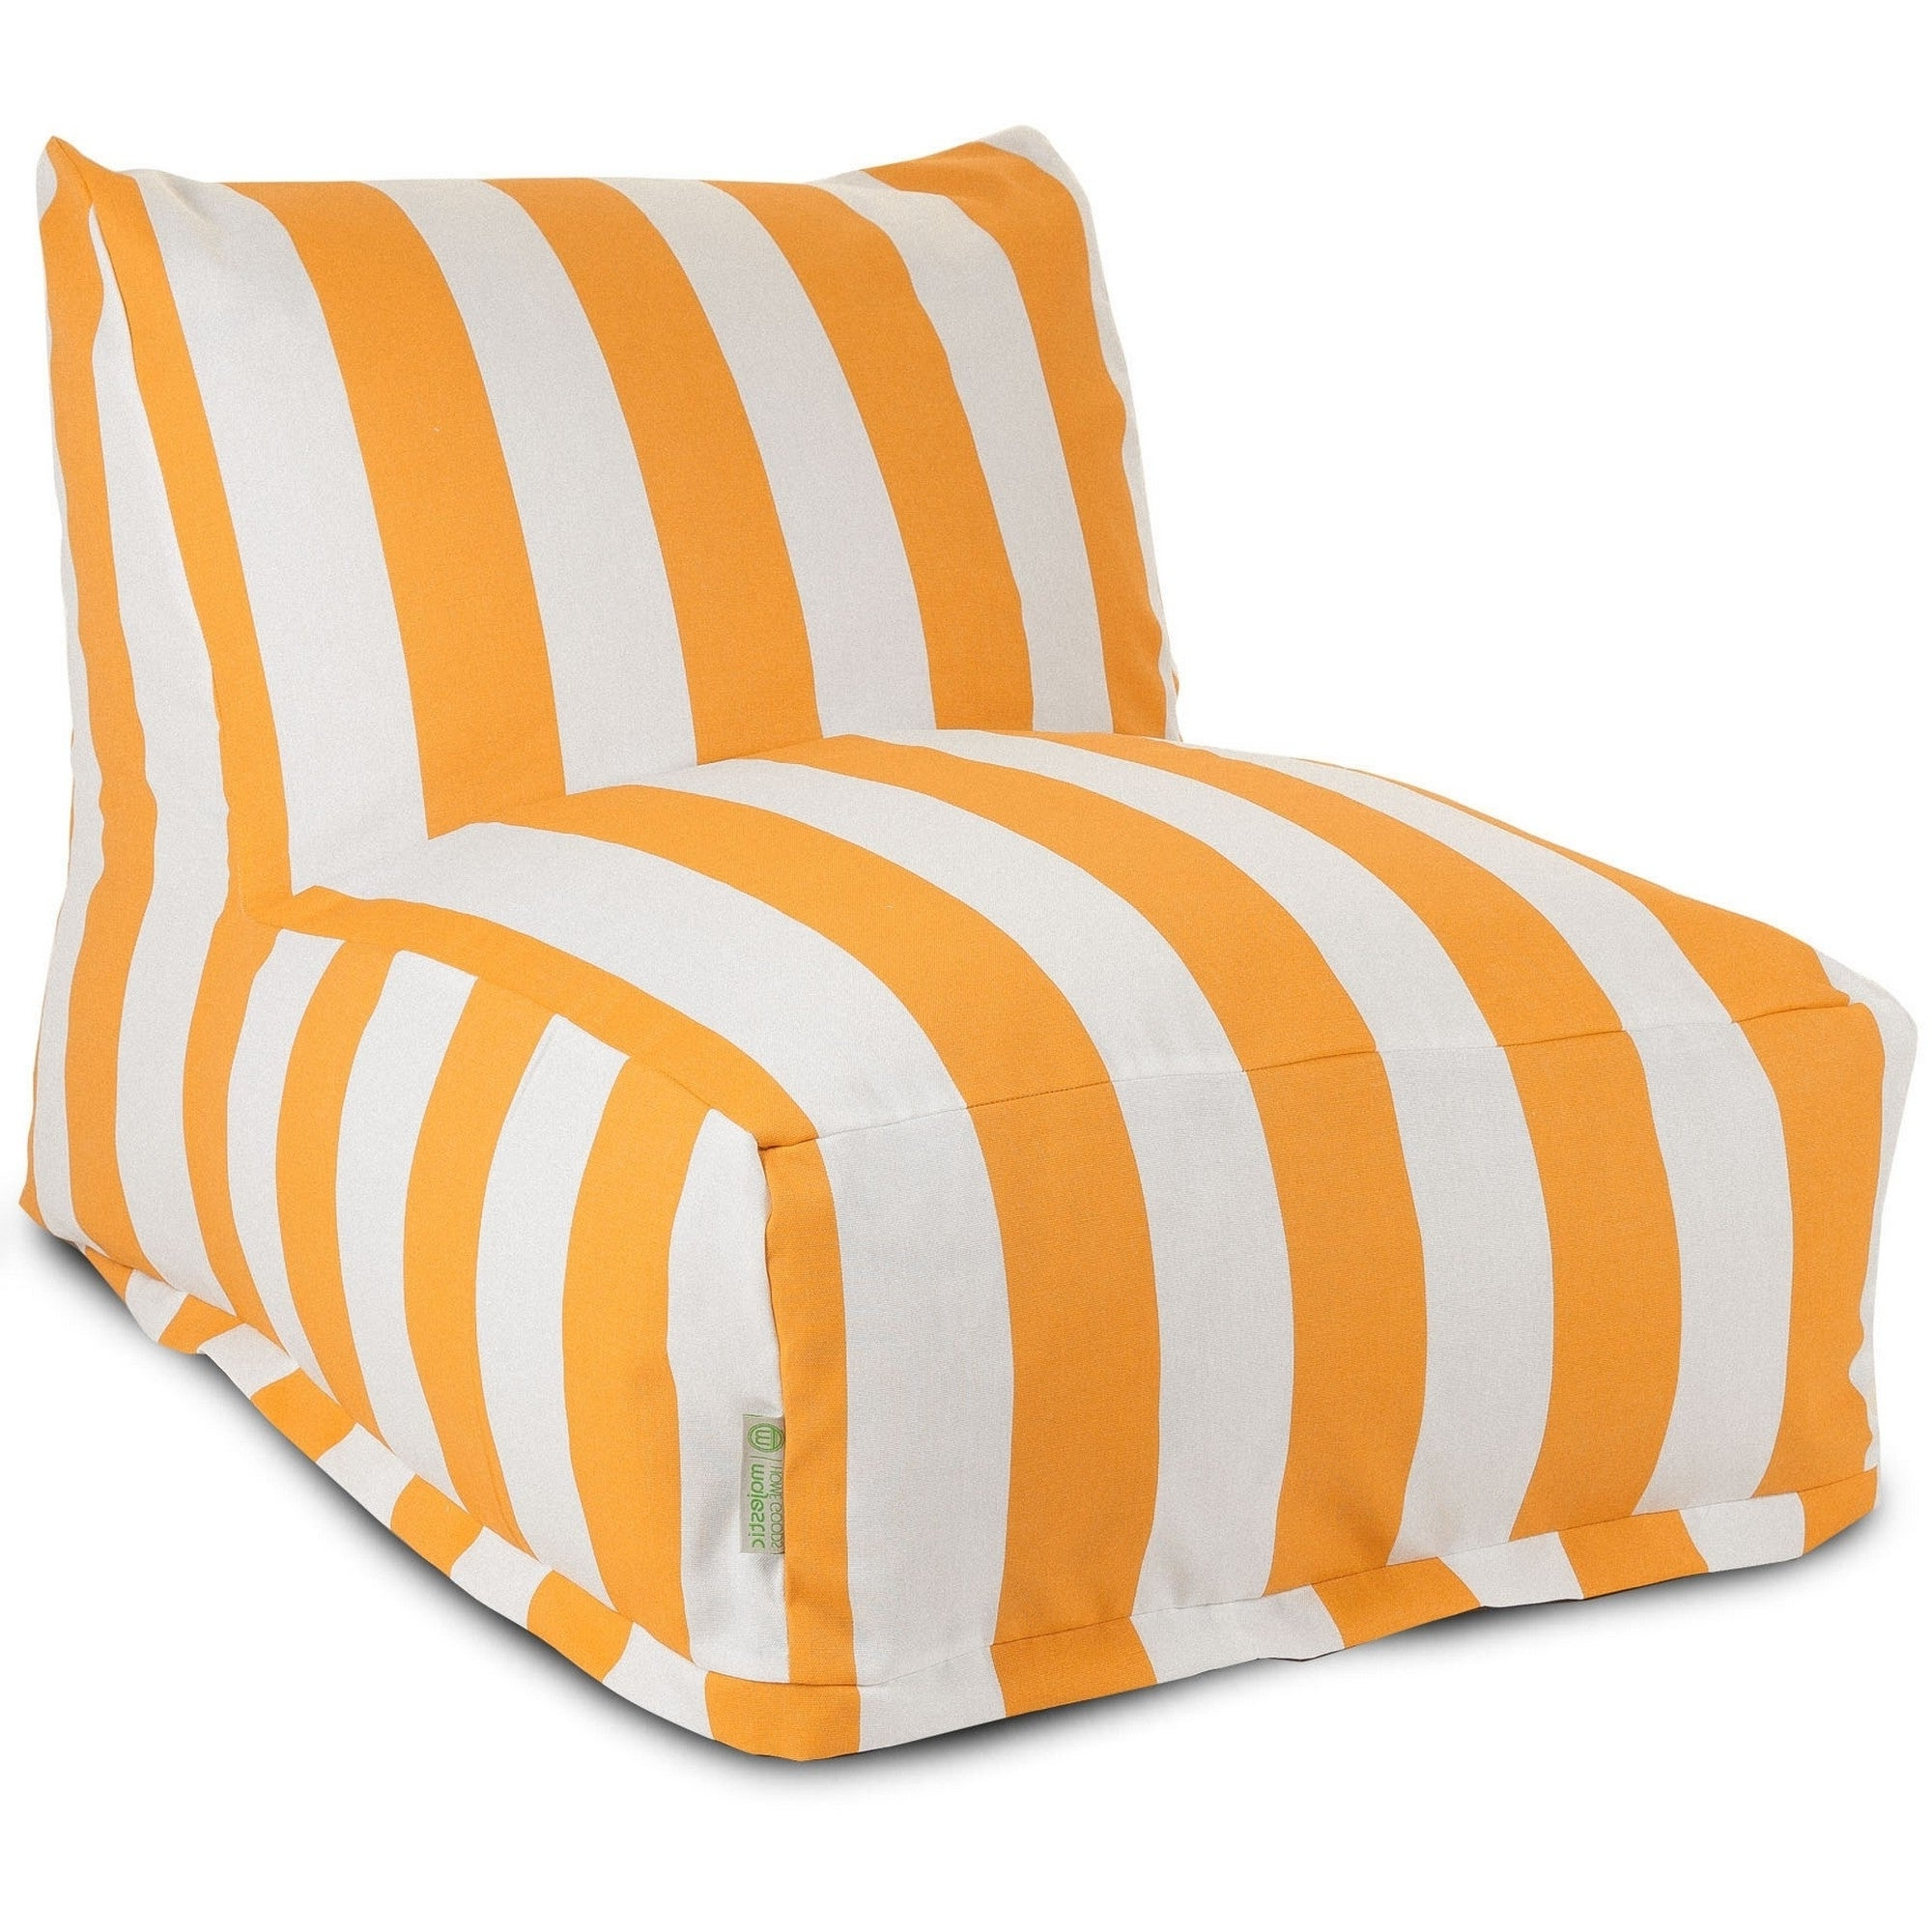 Popular Indoor/outdoor Vertical Stripe Bean Bag Chair Loungers With Majestic Home Goods Indoor Outdoor Yellow Vertical Stripe Bean Bag Chair Lounger 36 In L X 27 In W X 24 In H (View 4 of 25)